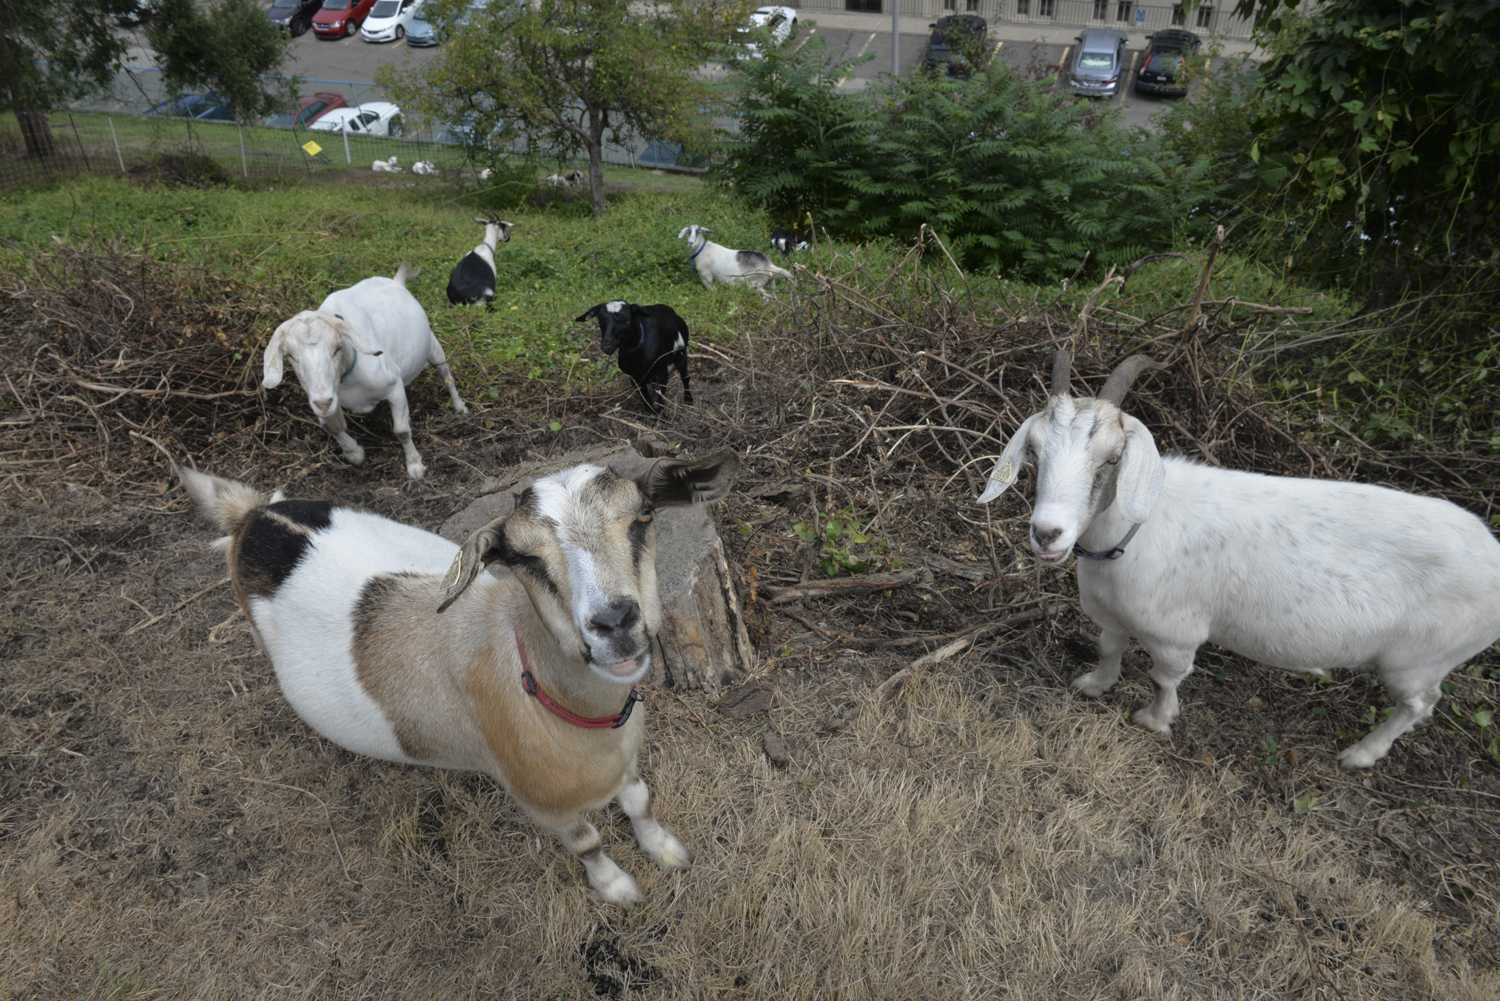 The goats frequently take breaks from eating to lie down and watch passersby. (Photo by Jon Kunitsky | Staff Photographer)